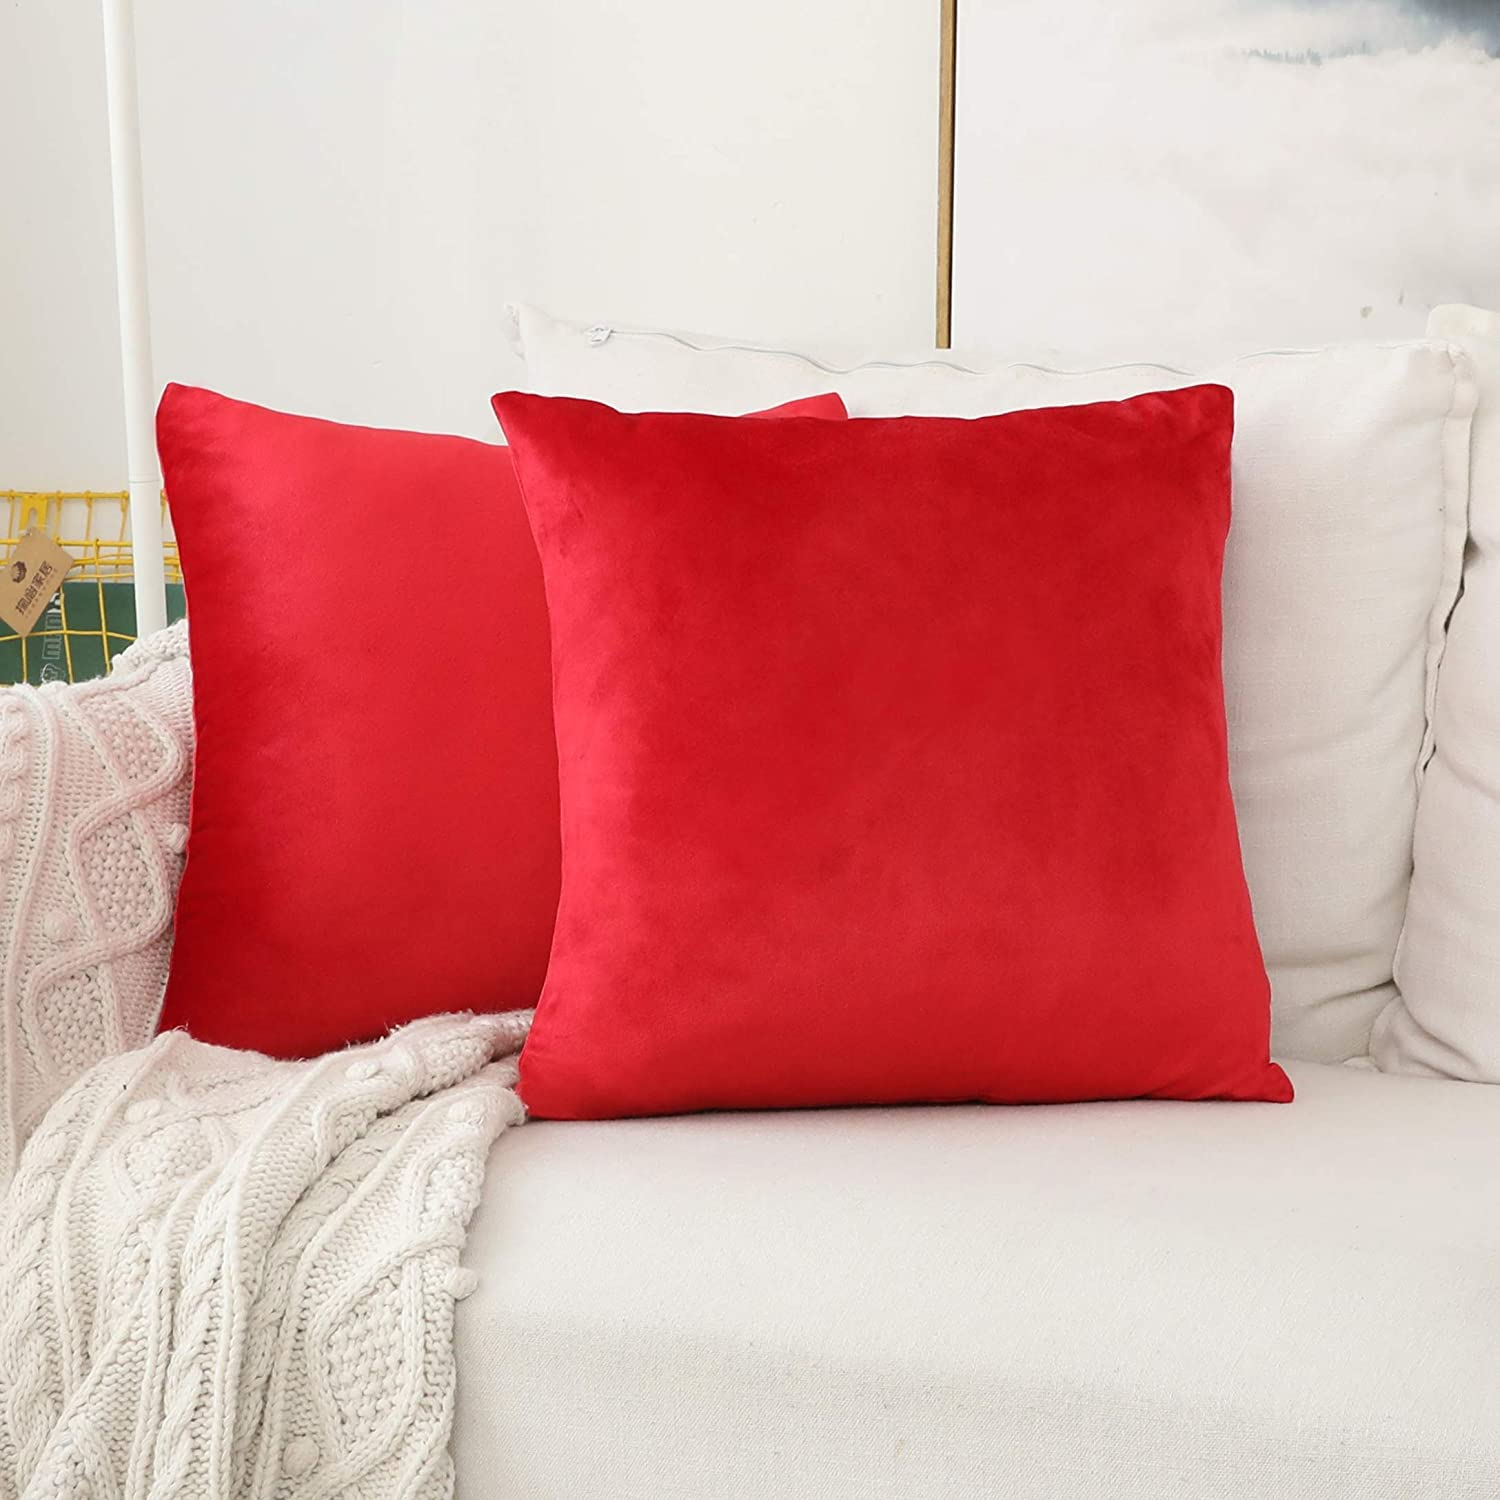 Home Brilliant Christmas Euro Shams Large Velvet Cushion Covers Pillow Case for Bedroom Floor Couch, Set of 2, 26 x 26 Inch(66cm), Ruby Red